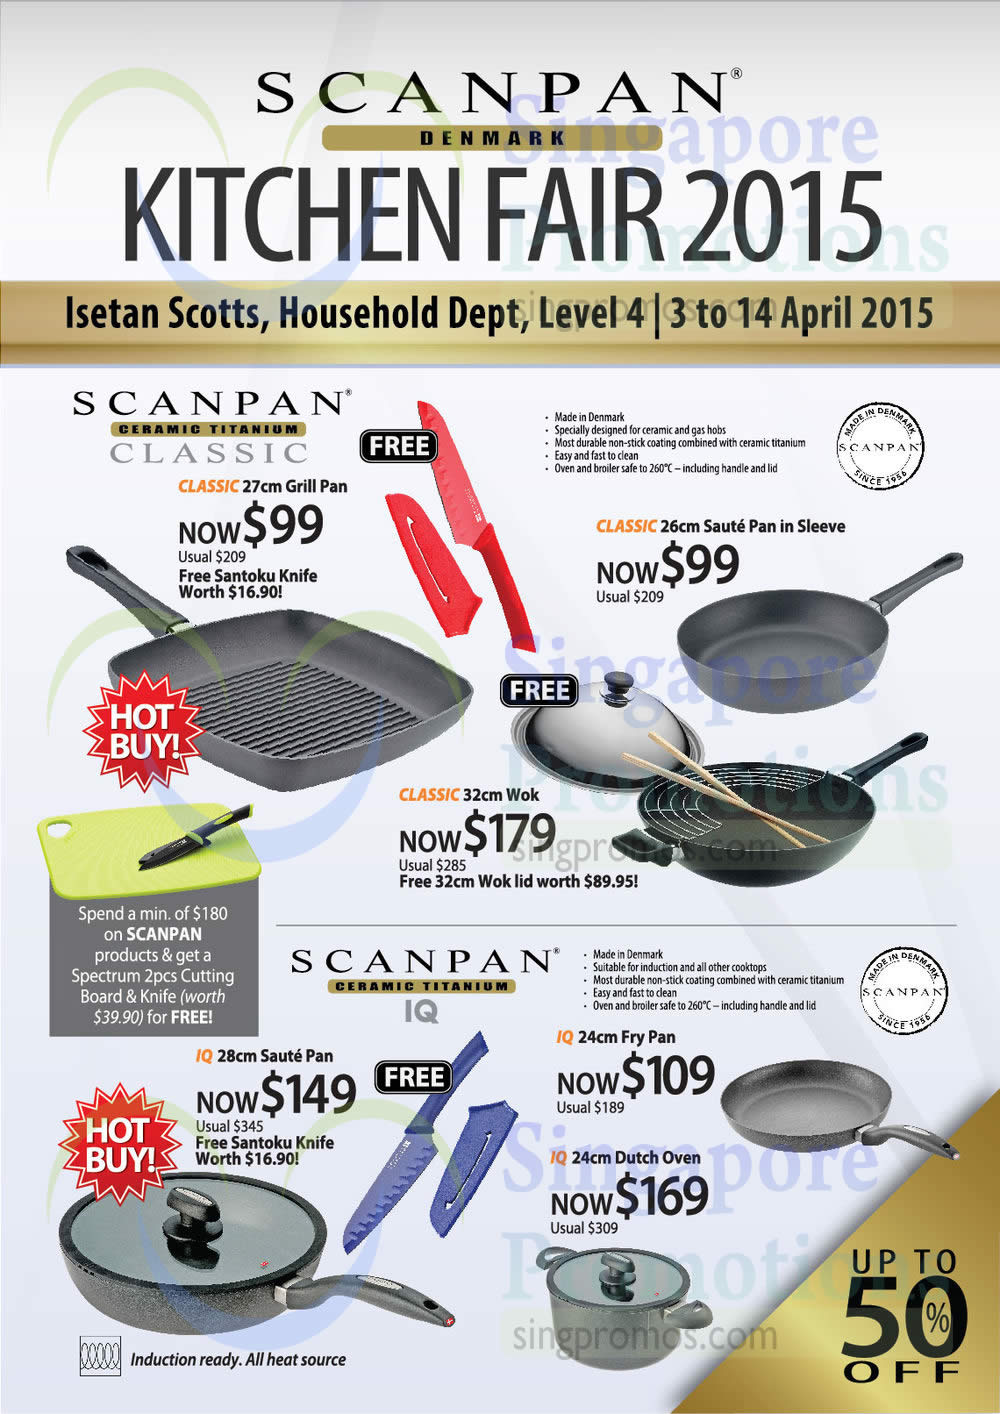 Cookware, Classic, IQ, Grill Pan, Saute Pan, Woks, Fry Pan, Dutch Oven, Cutting Board, Knife, Isetan Kitchen Fair 2015